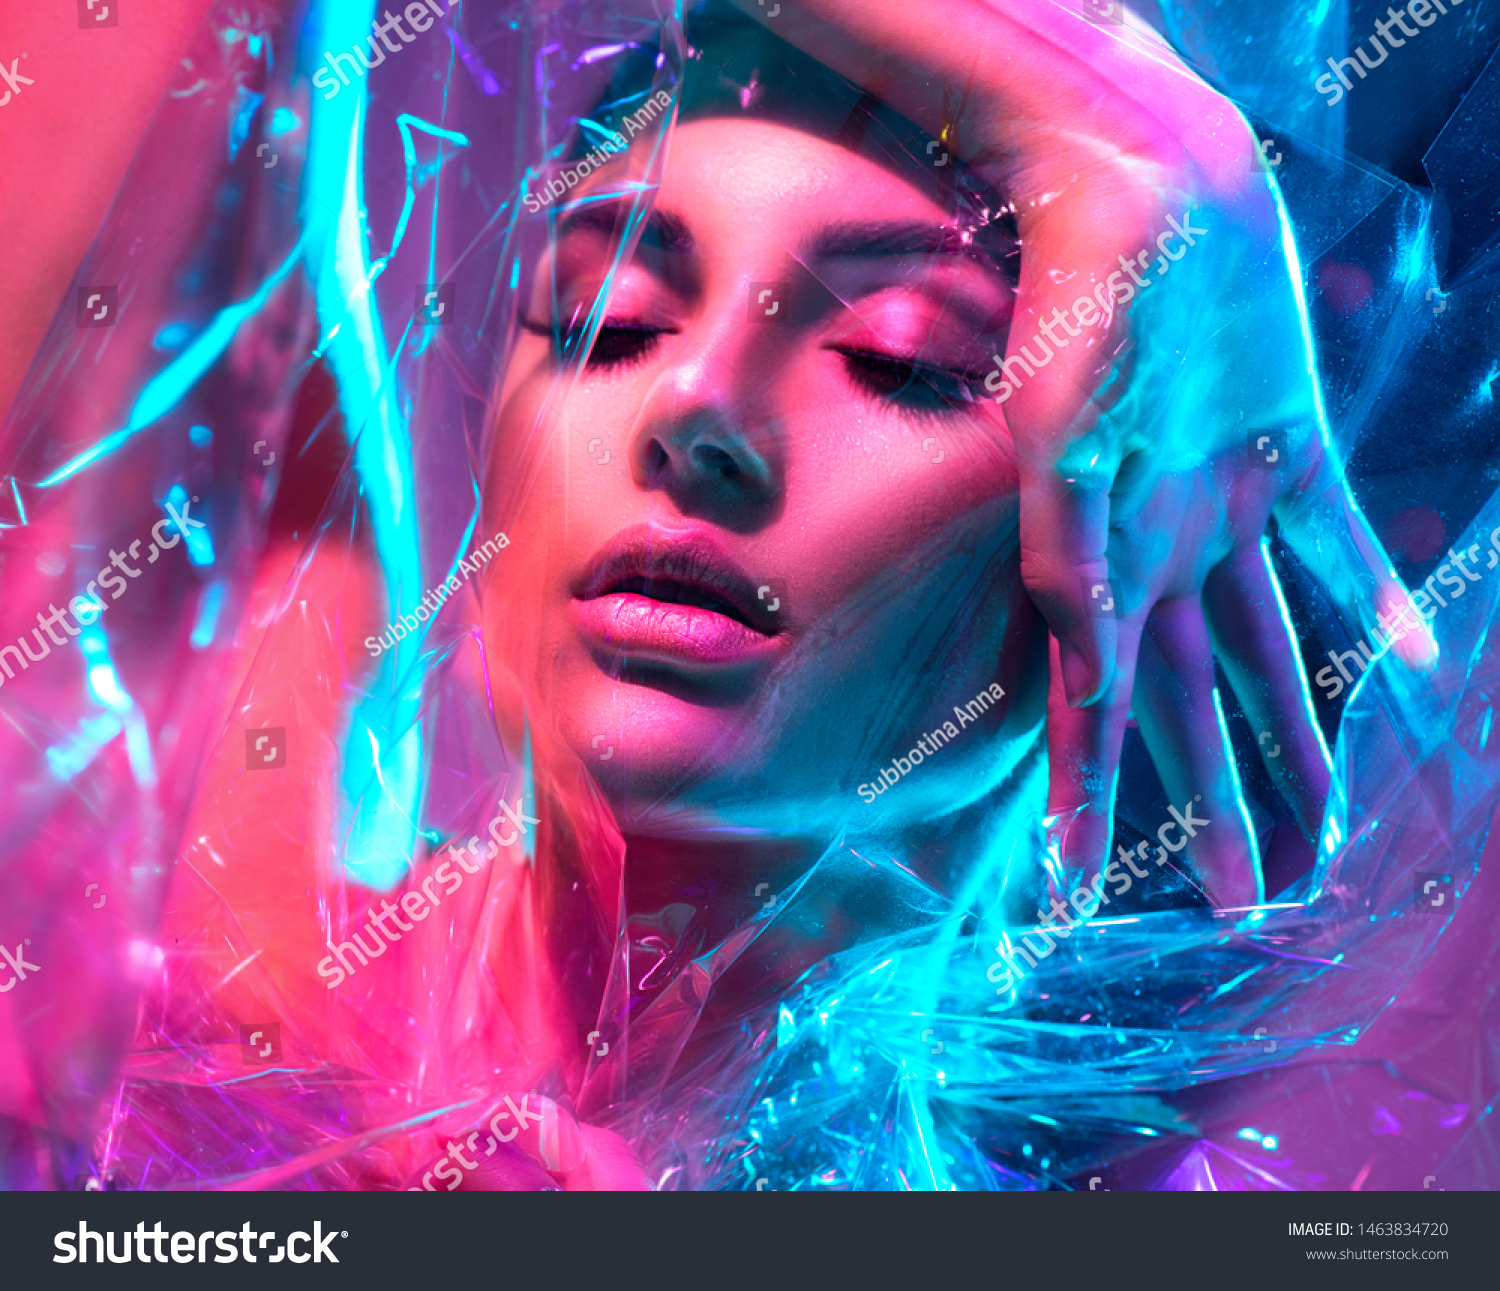 High Fashion model girl in colorful bright neon lights posing in studio through transparent film. Portrait of beautiful sexy woman in UV. Art design colorful make up. On colourful vivid background #1463834720